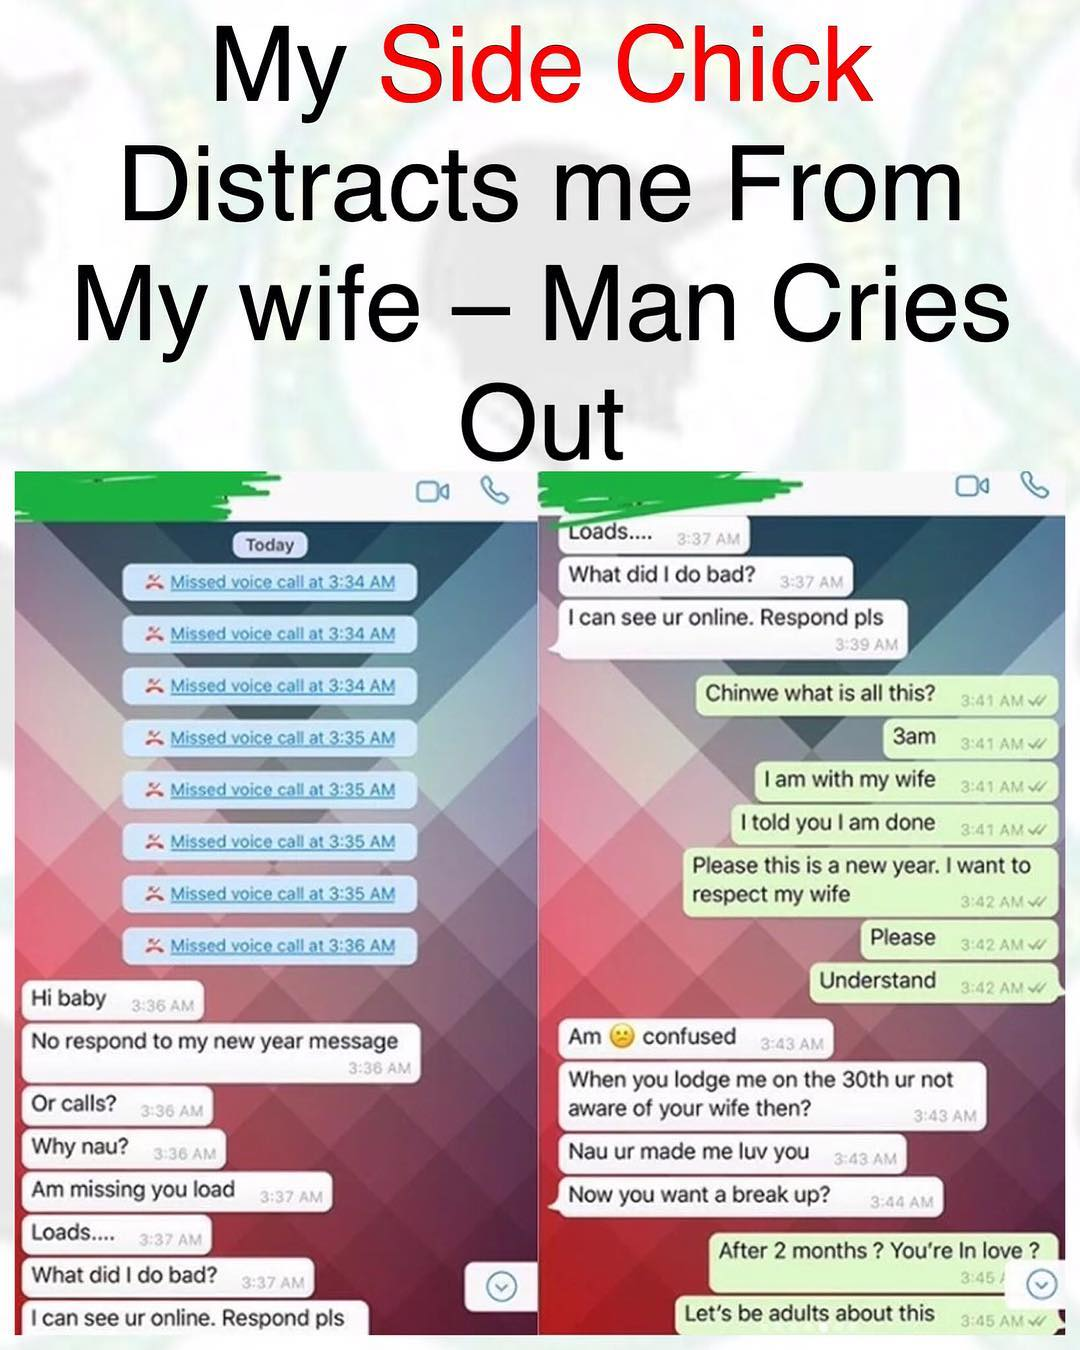 My Side Chick Distracts Me From My Wife - Man Cries Out